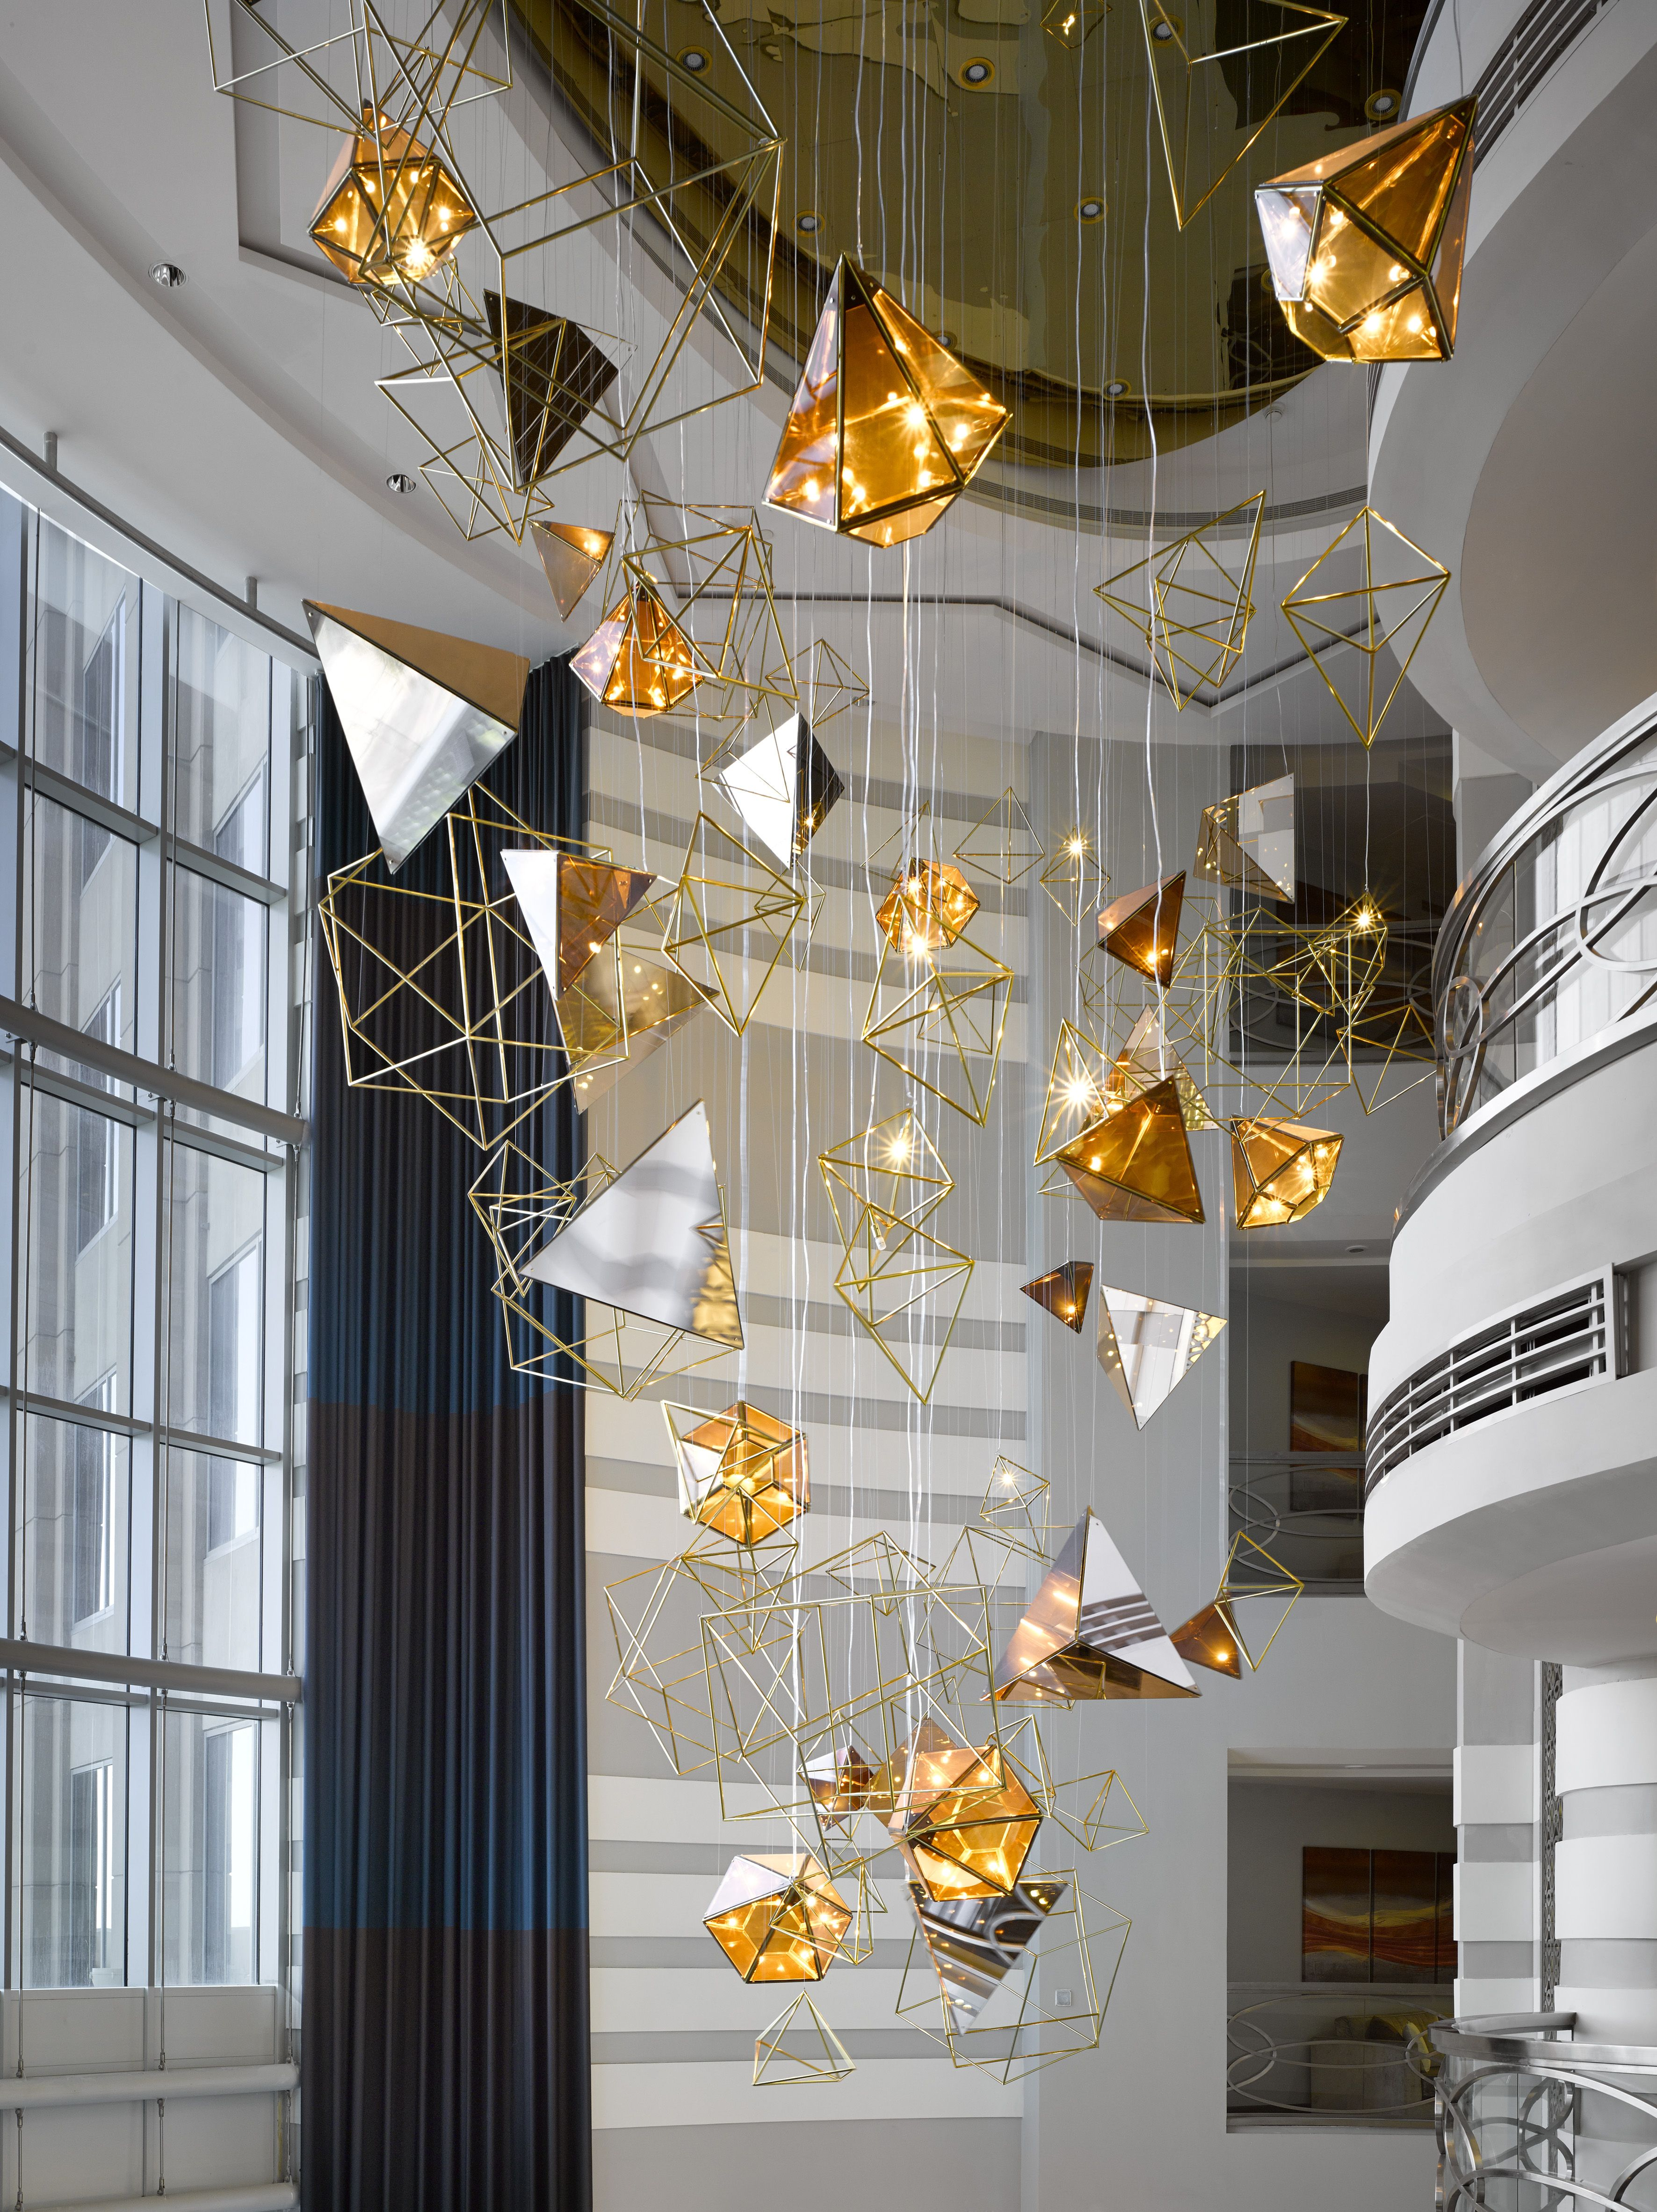 Get Inspired By These Amazing Designs Contemporarylighting Eu Contemporaryhomedesign Lightingtrends Interiordesign